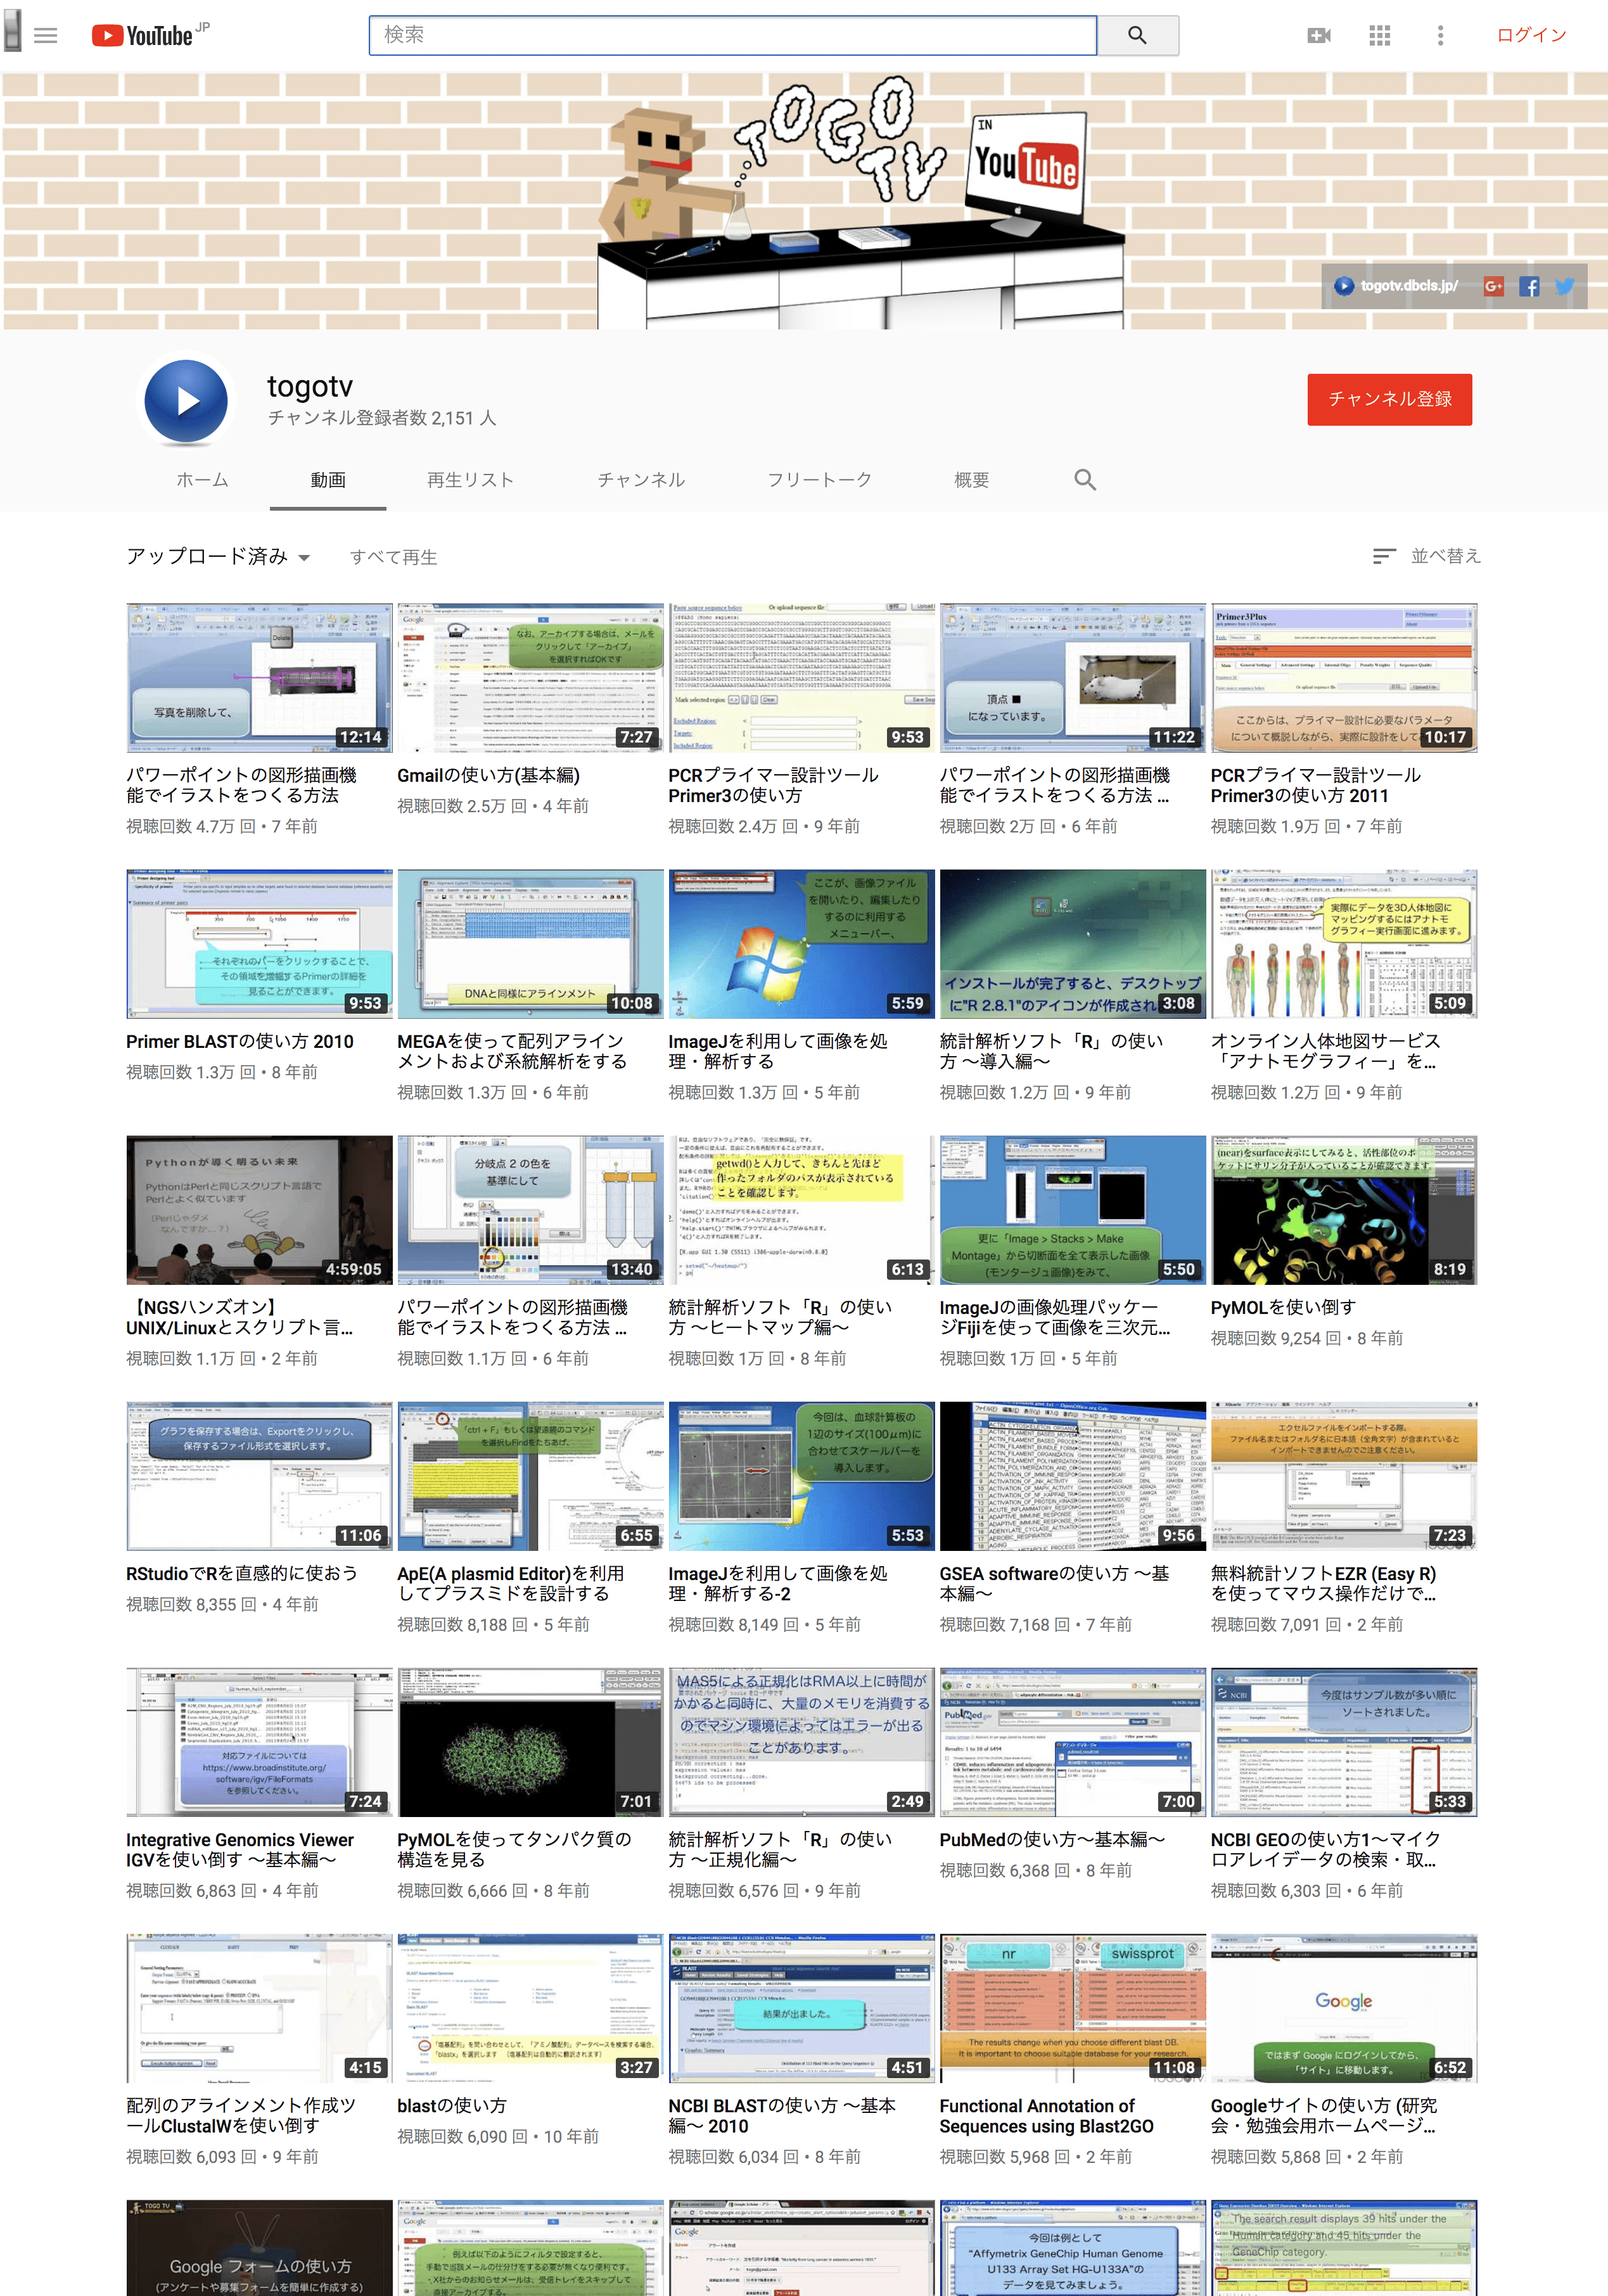 統合TV YouTube支店